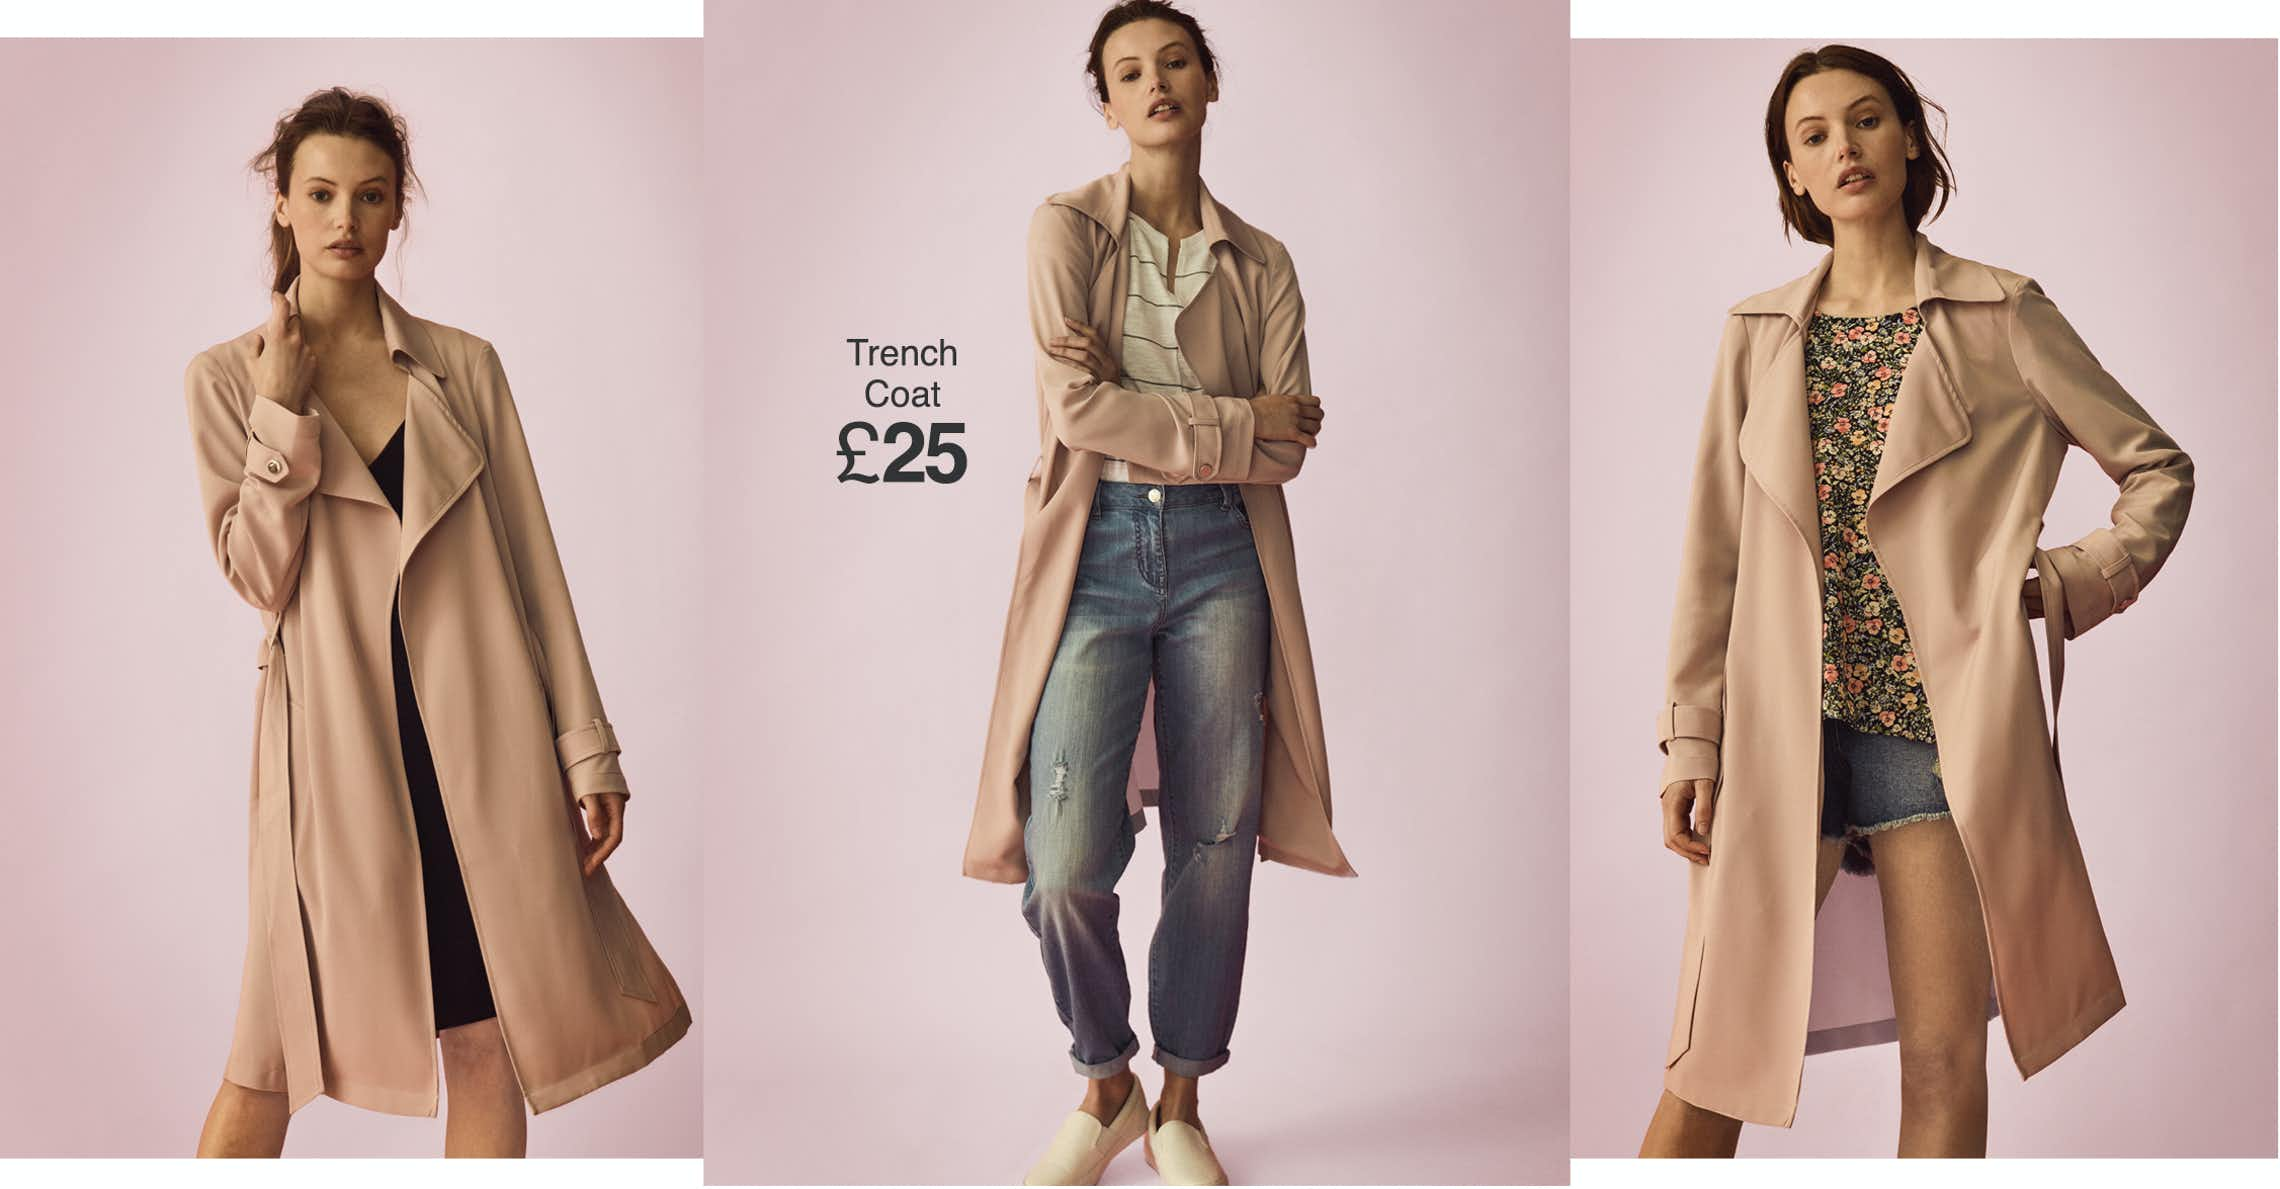 the iconic trench coat top ways to wear matalan #0: image 1 ixlib rails 2 1 4 auto format 2c press cs tinysrgb w 1140 dpr 2 q 30 s ddc08b99fbc8467d3368b6c7c42c3e75